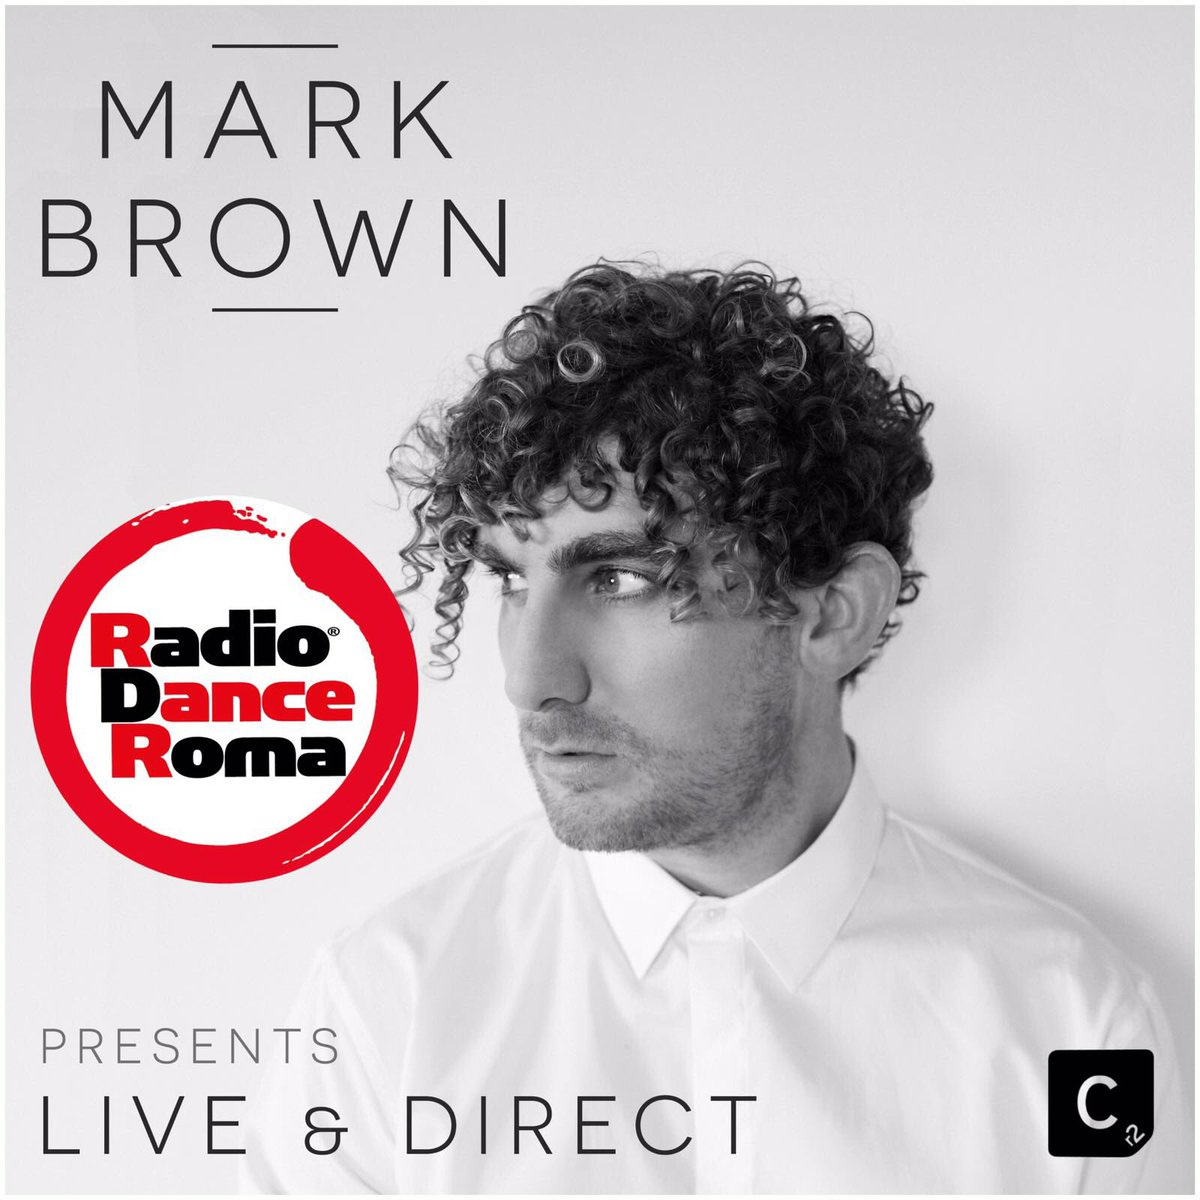 http:// shoutcast.streamingmedia.it:5034/index  &nbsp;   listen the new radio in rome #NowPlaying mark brown with @cr2records radioshow #house #techouse #techno  http://www. radiodanceroma.it  &nbsp;  <br>http://pic.twitter.com/qYGuqqmgcd